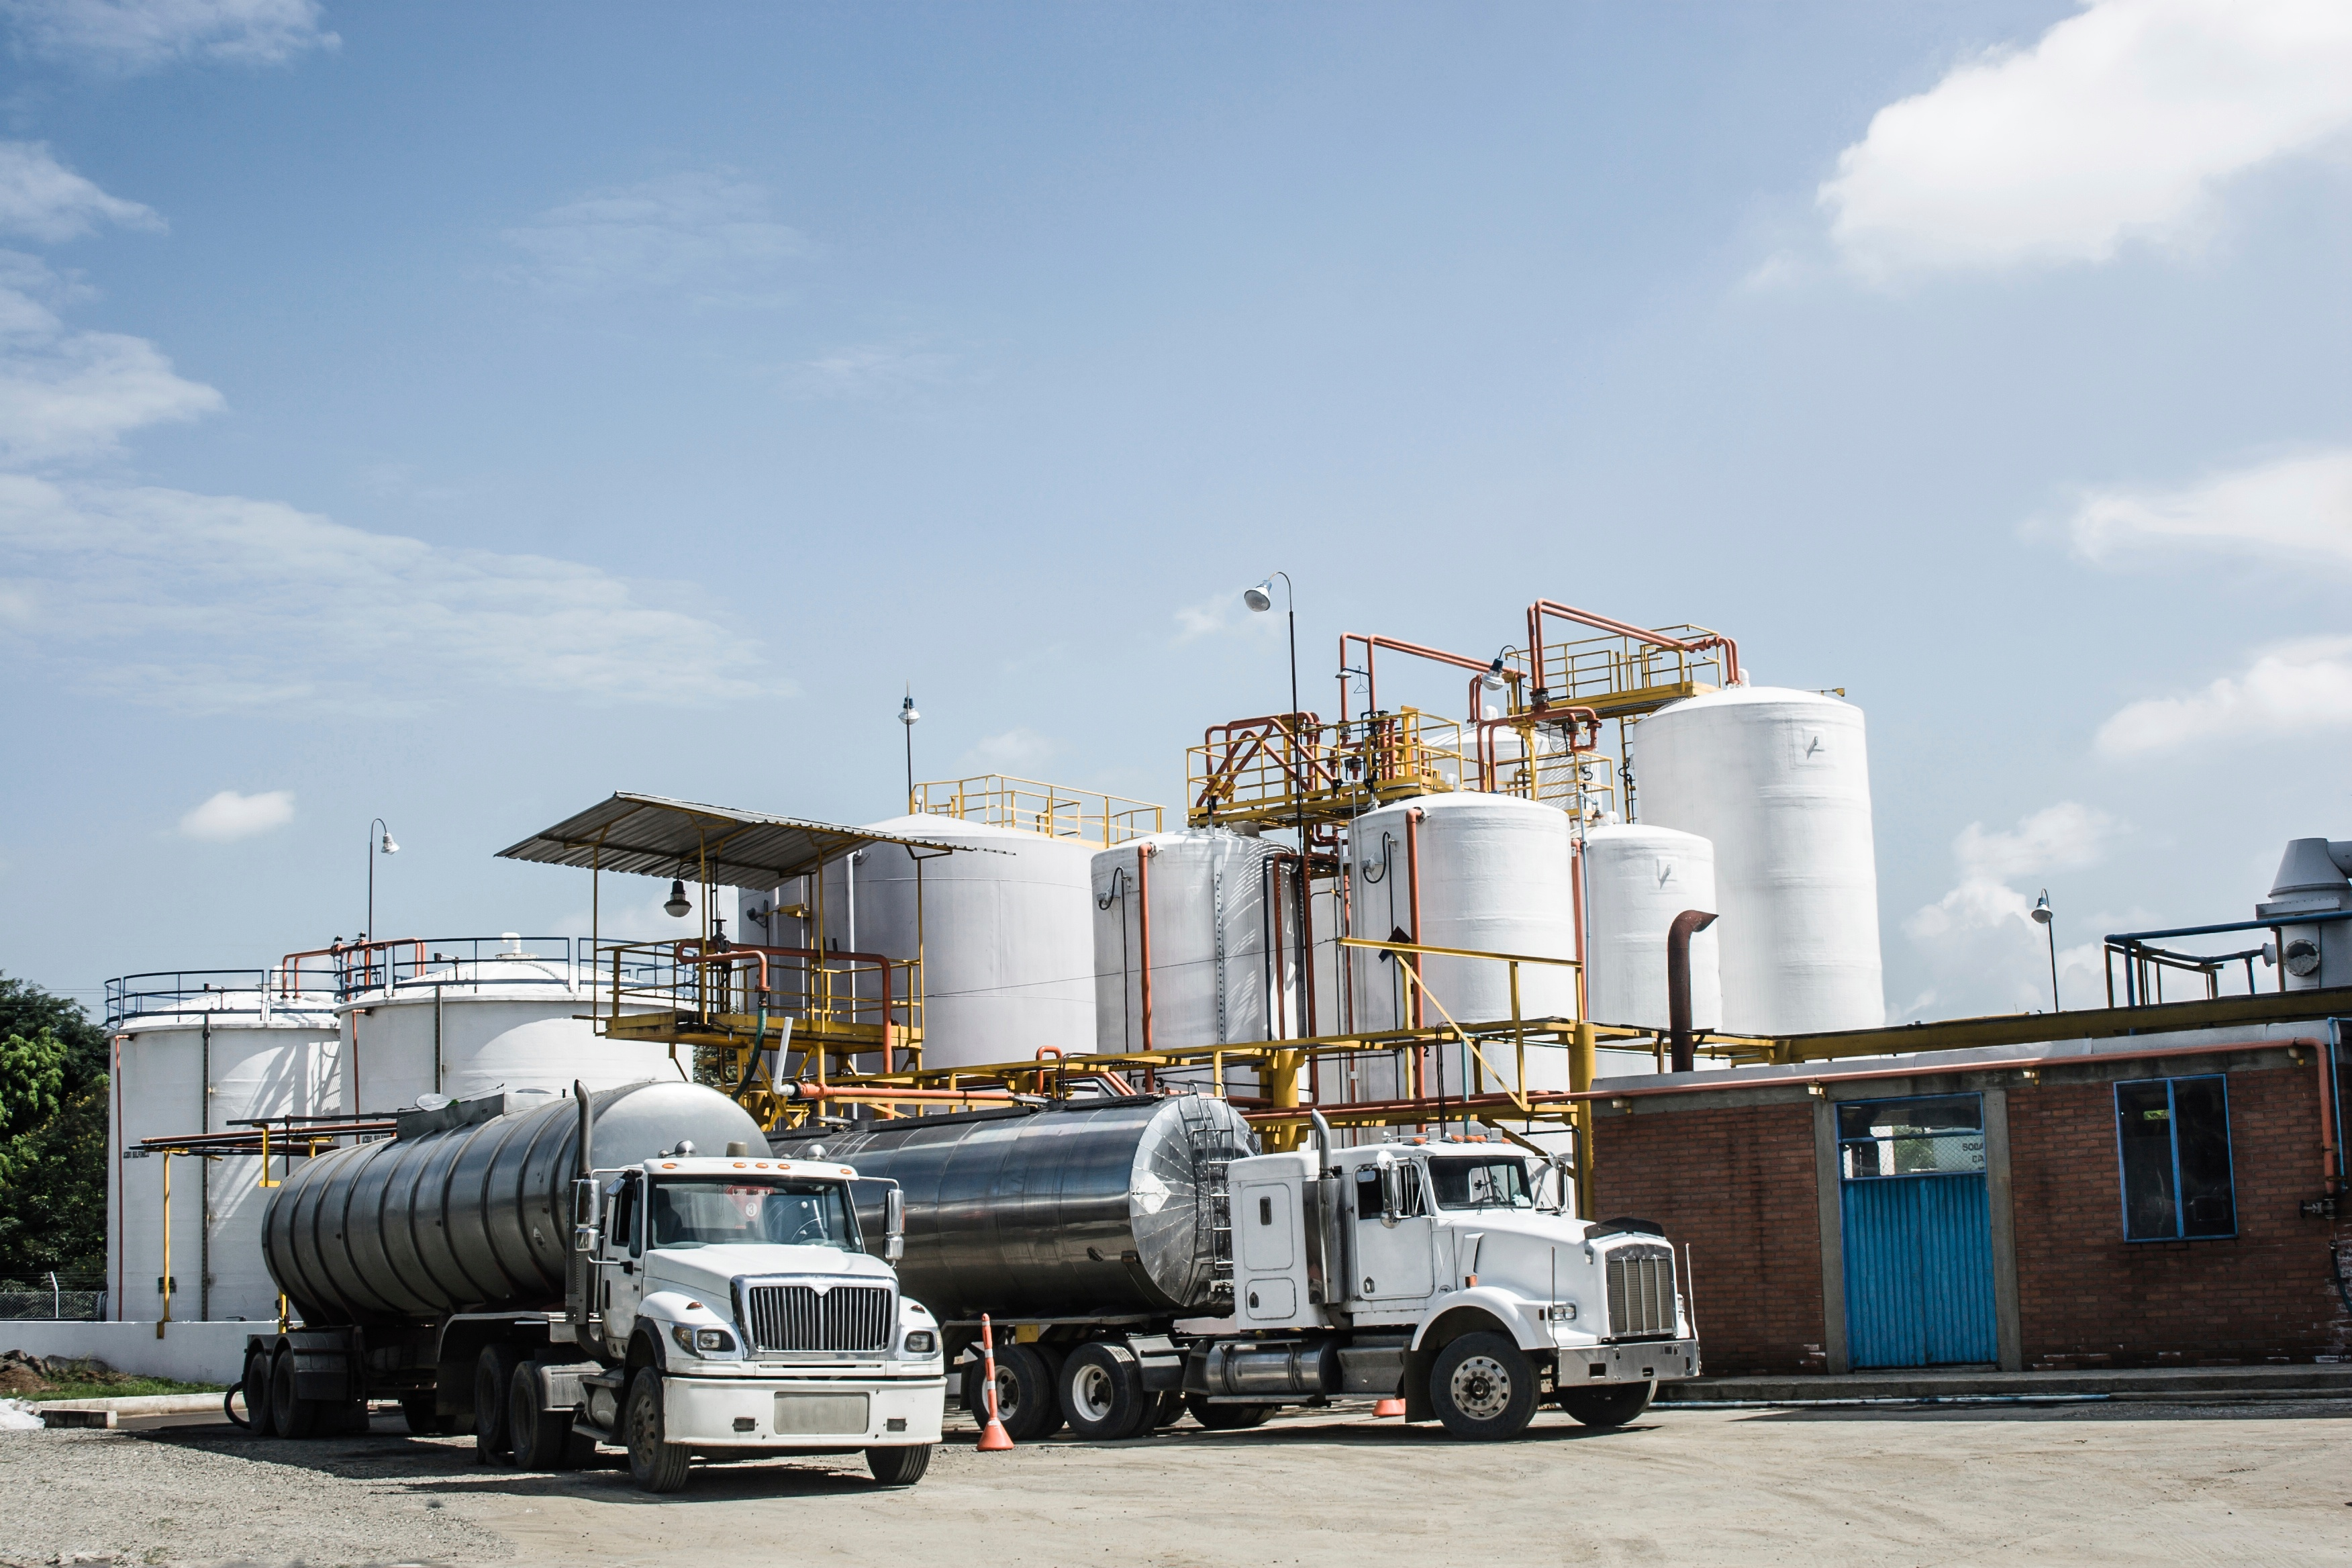 Top 3 Tank Truck Safety Hazards: Do You Know The Risks?